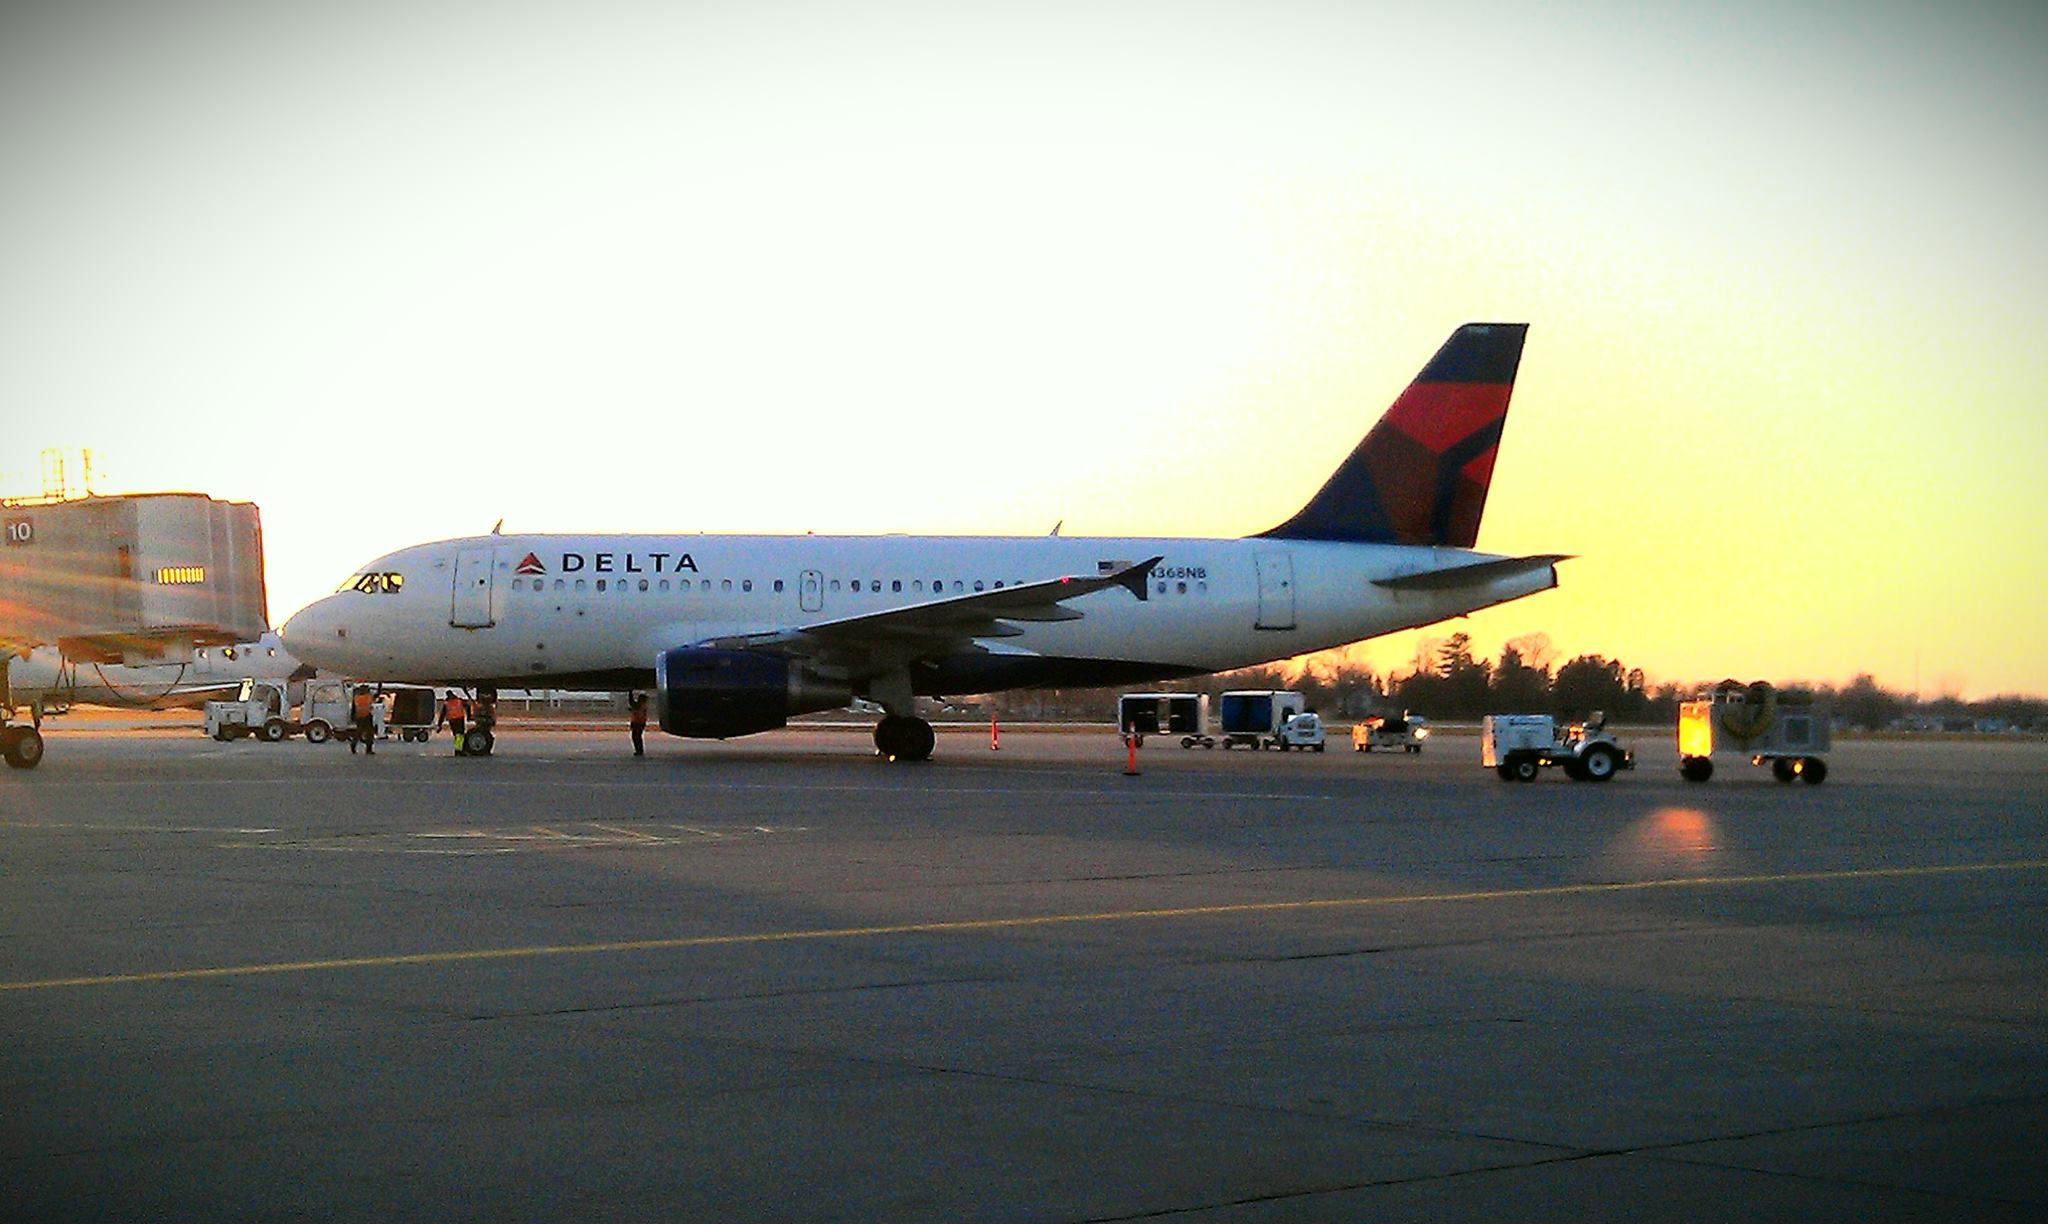 Delta At The Gate At The Quad City International Airport Moline Il Photo By M Watkins Moline Quad Cities Quad